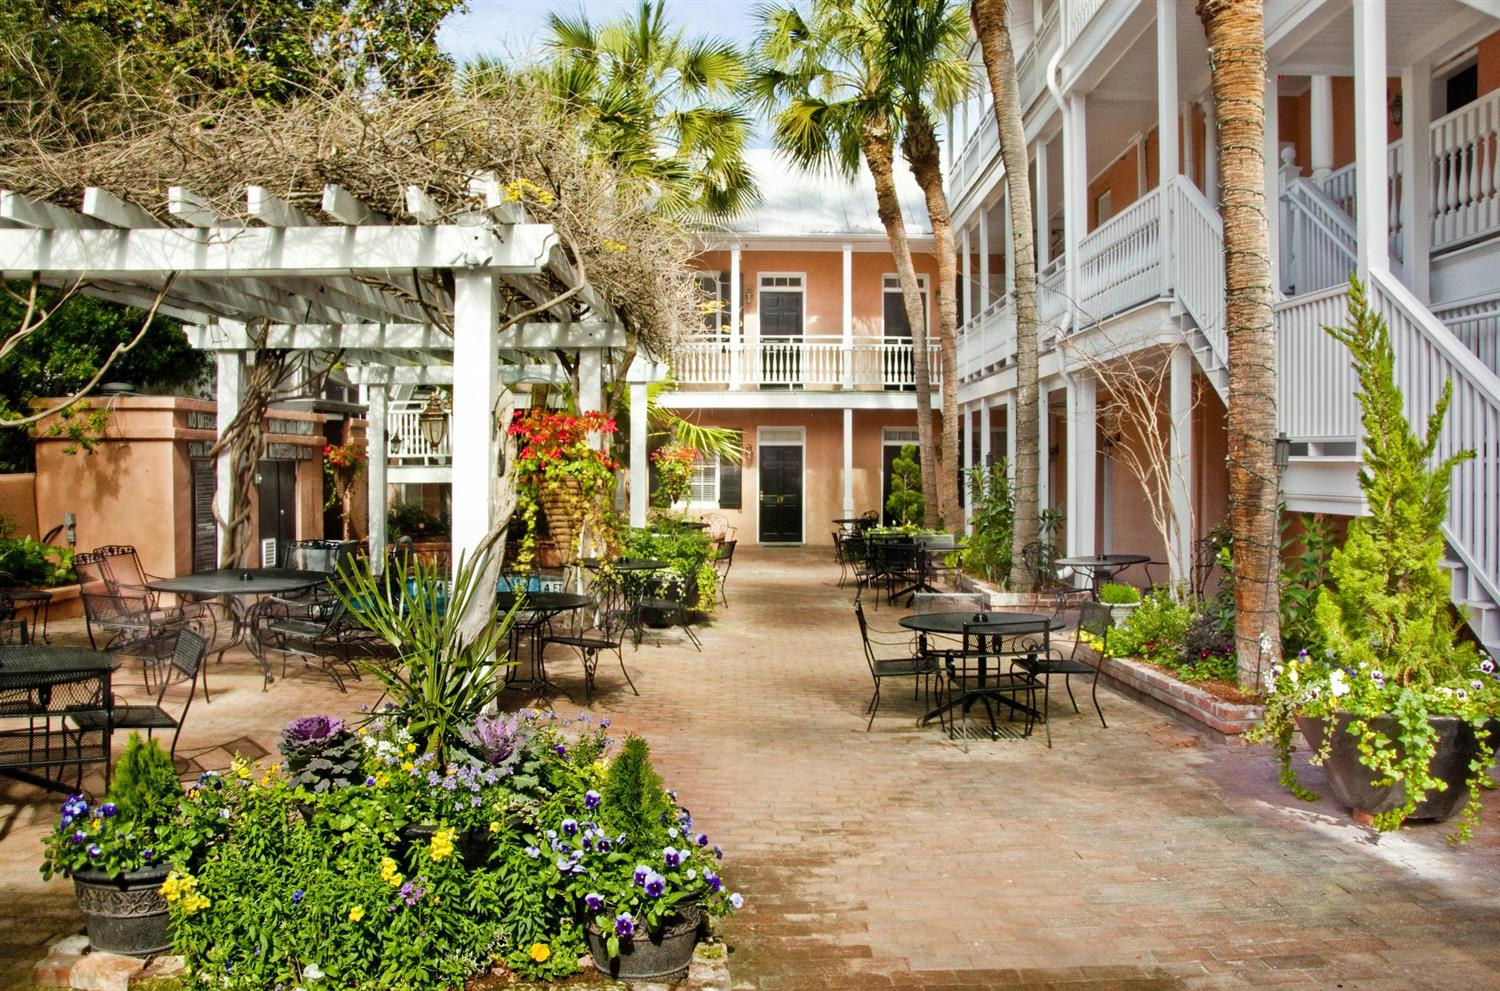 Coupons for restaurants, tours, shows & more in Charleston, SC. Updated regularly.